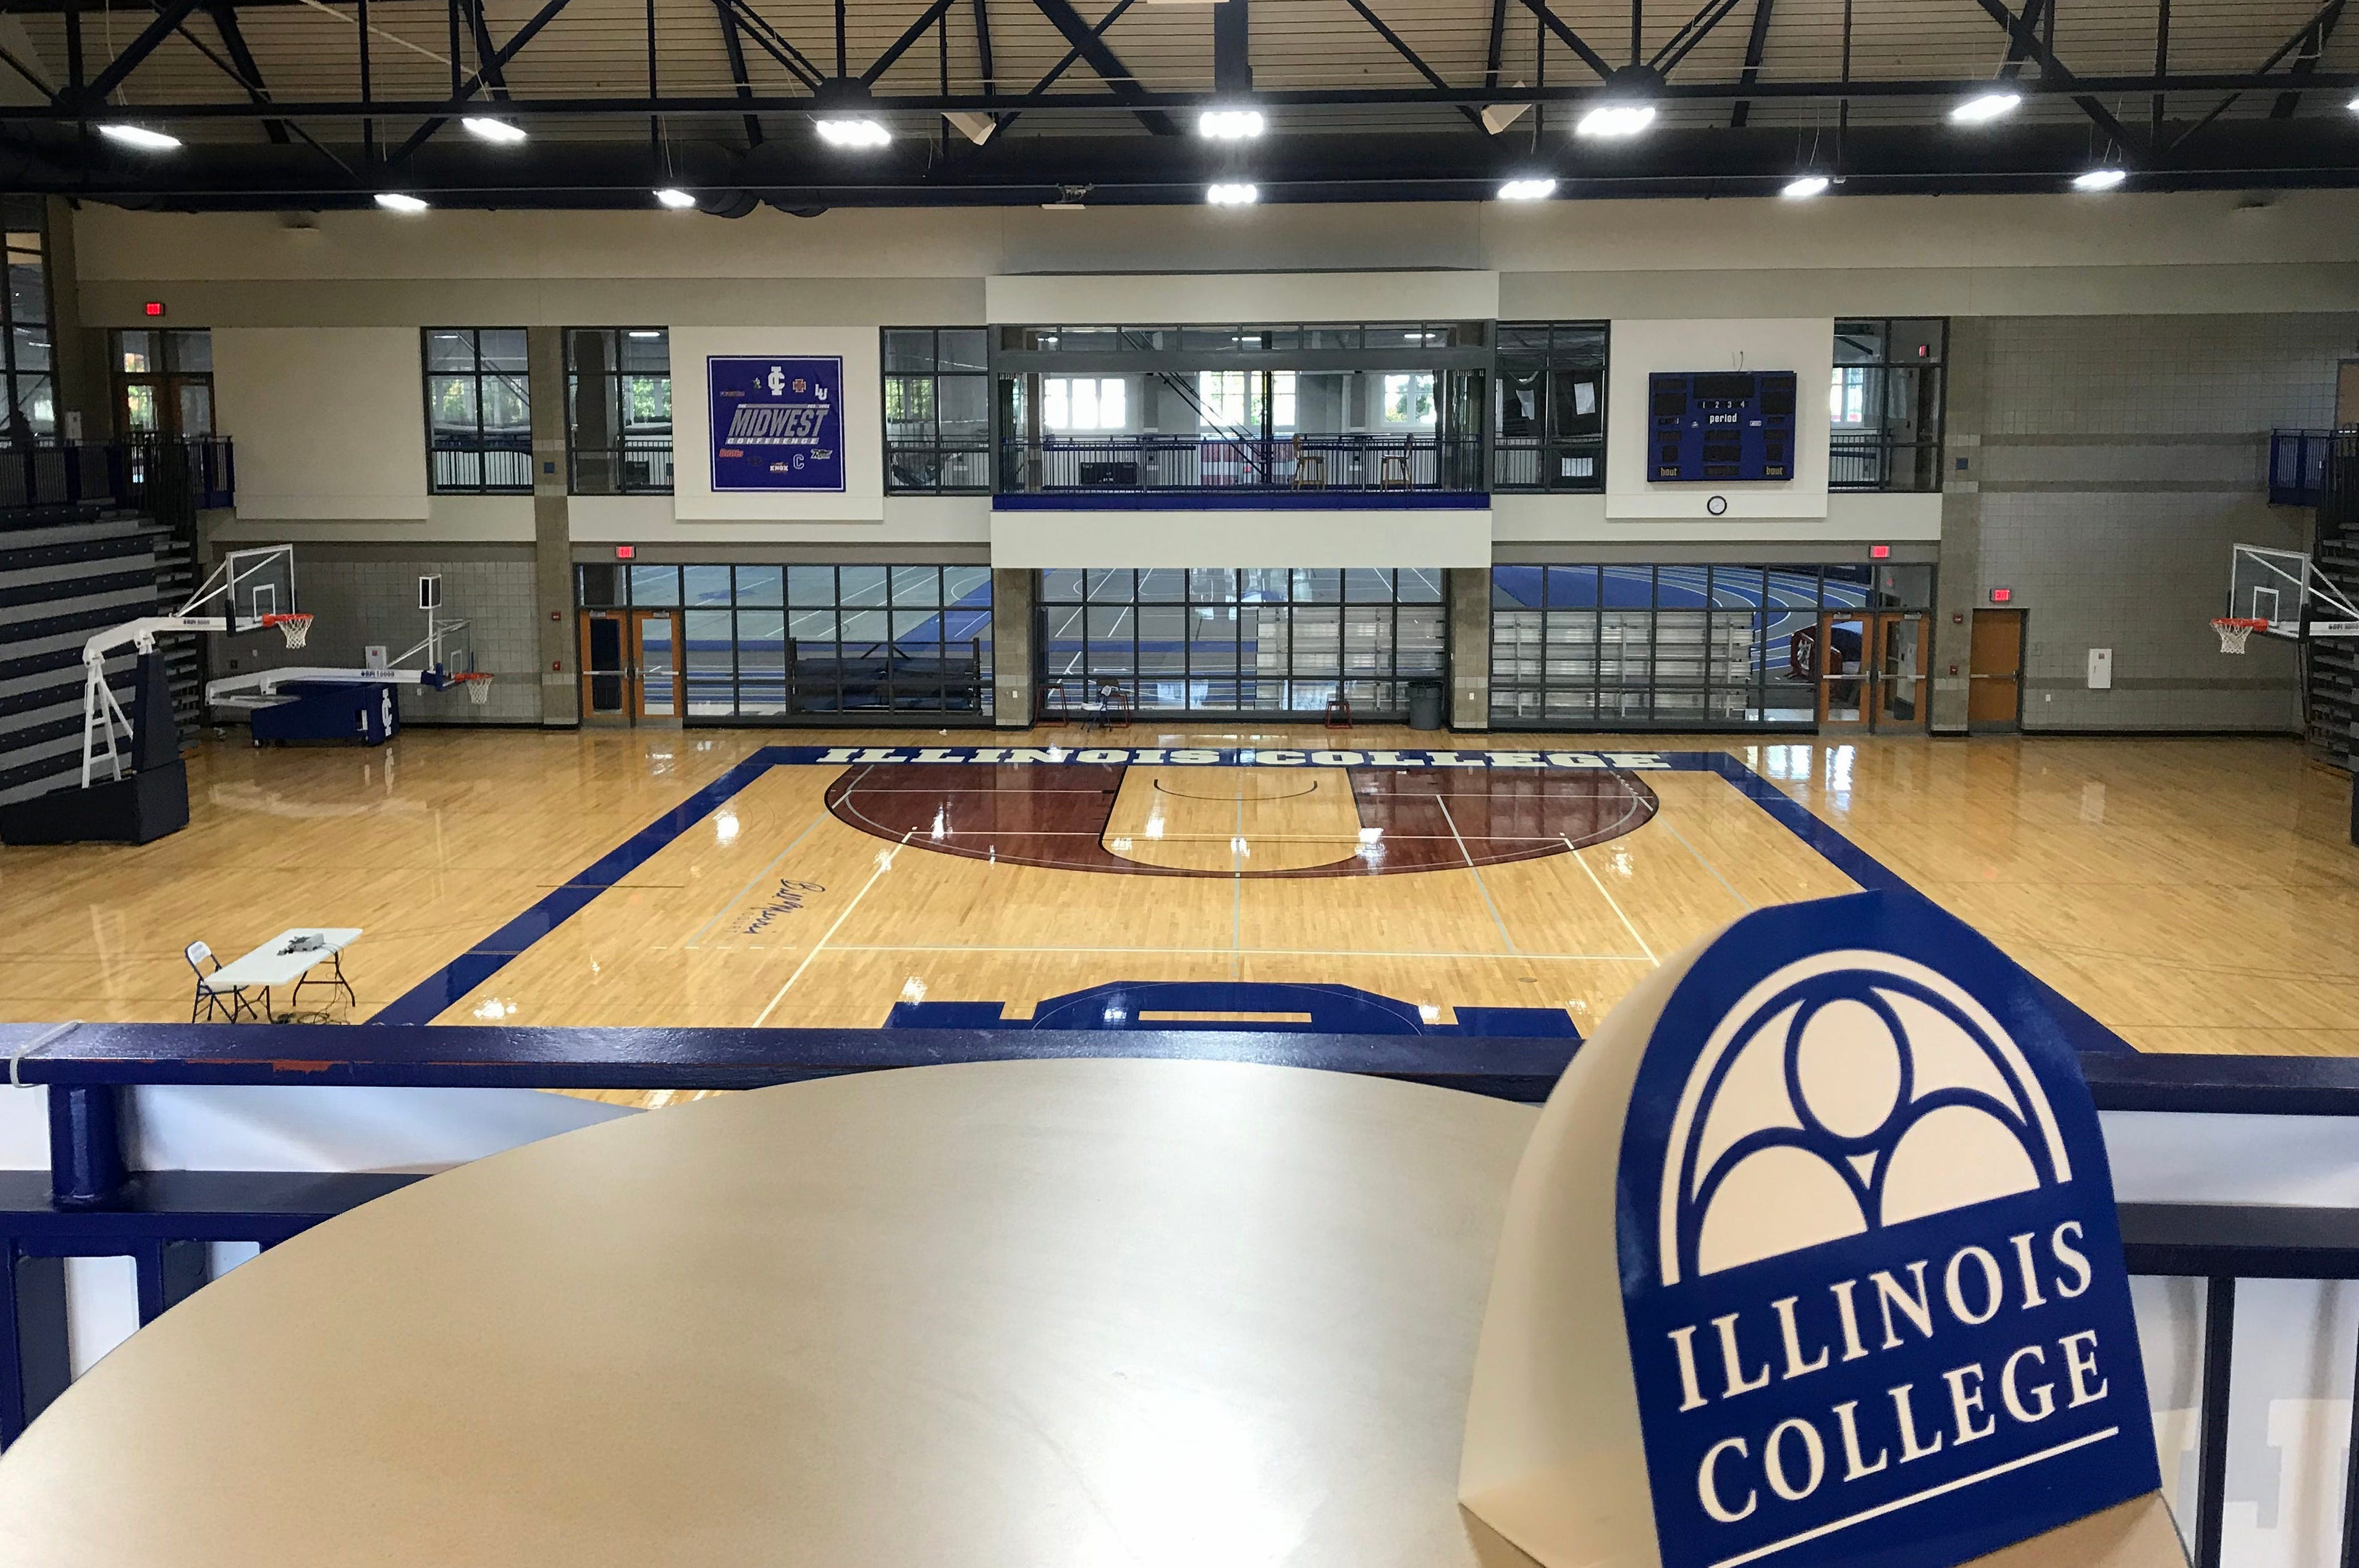 The fieldhouse at Illinois College.